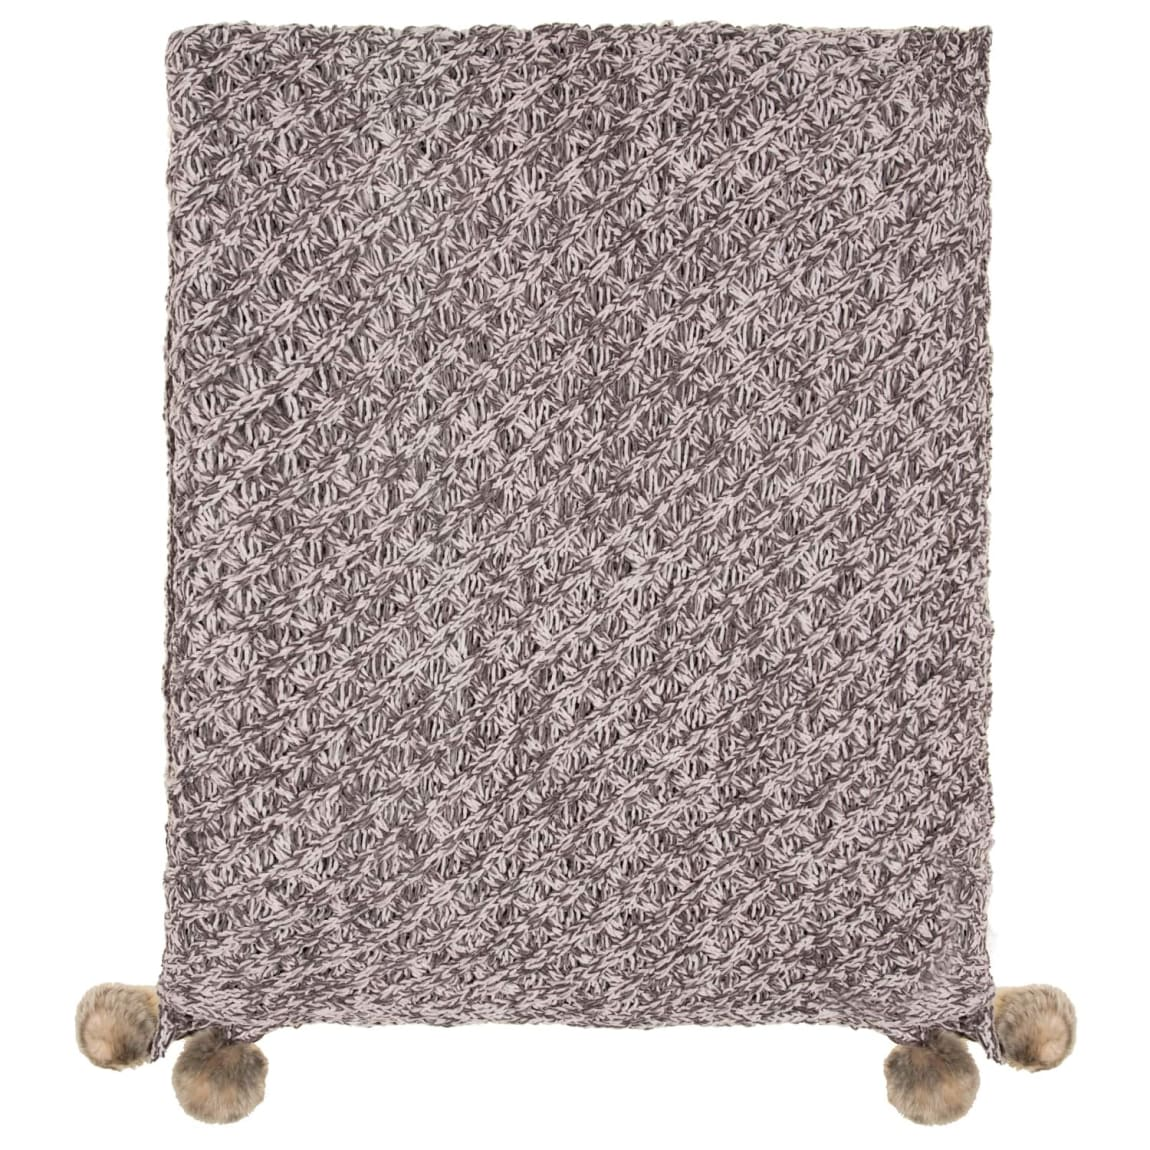 Knitted Faux Fur Pom Pom Throw - Grey